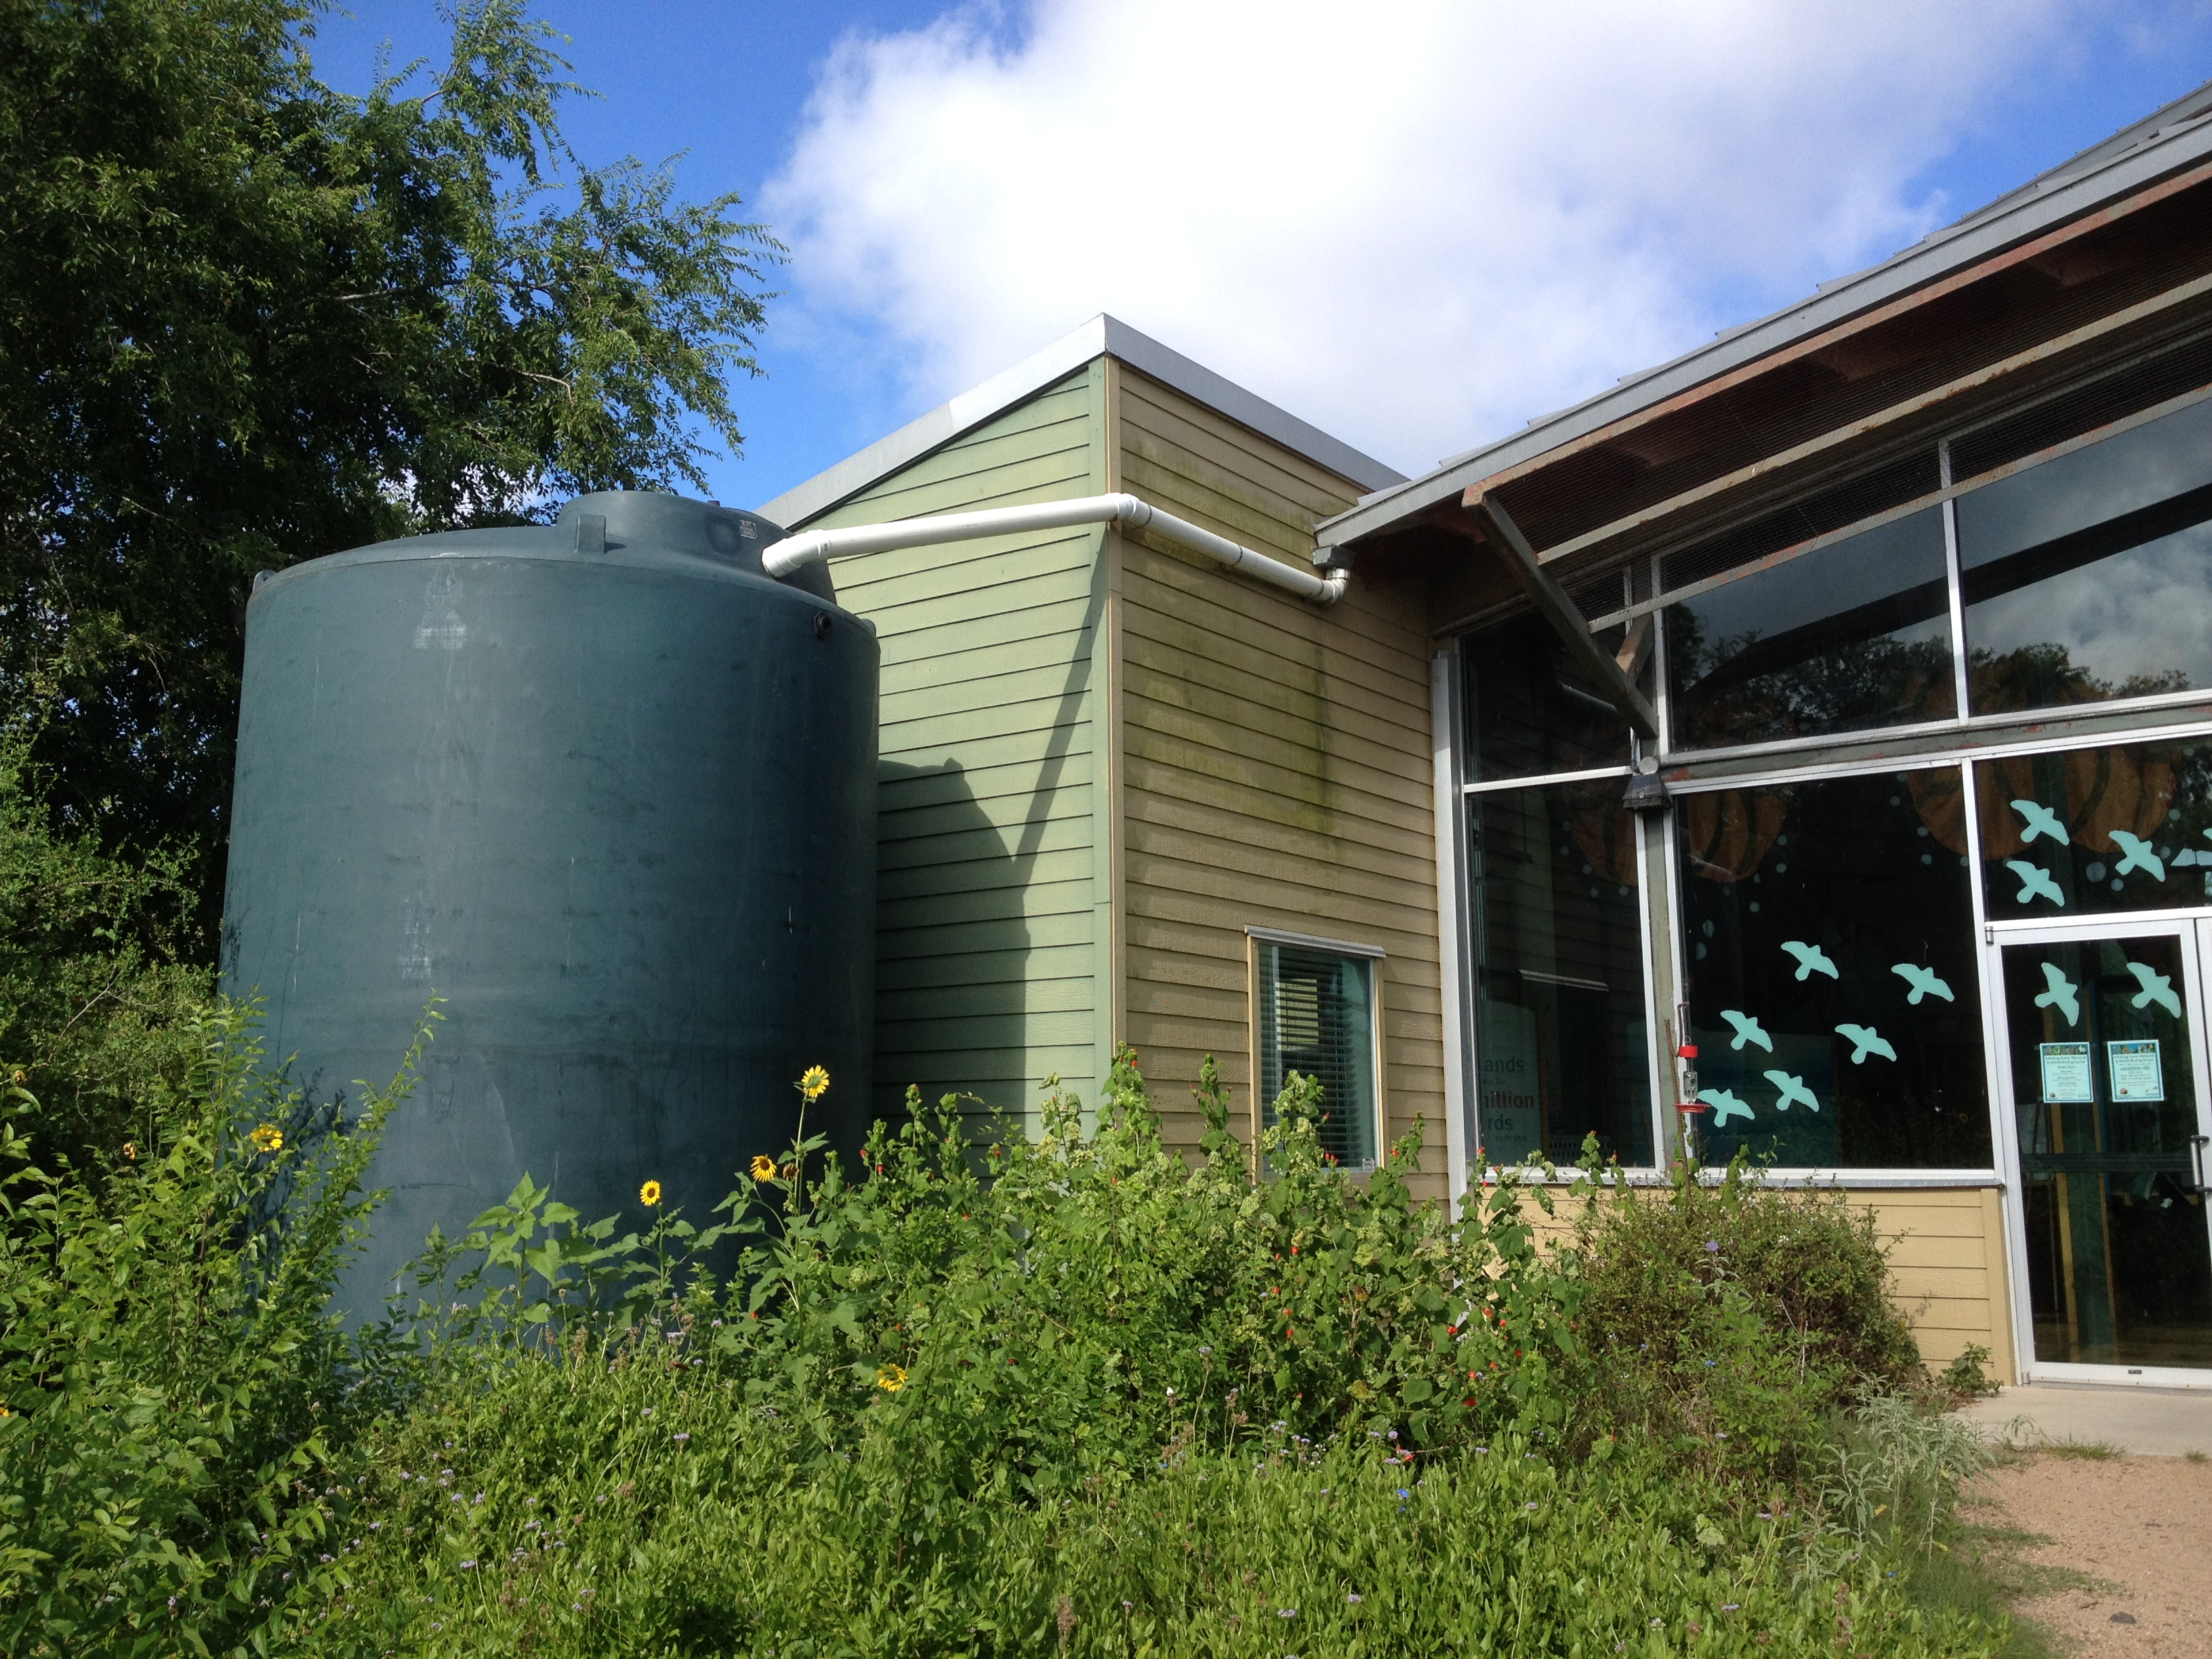 Rainwater harvesting 39 soaking in 39 as way to conserve texas for Rainwater harvesting at home